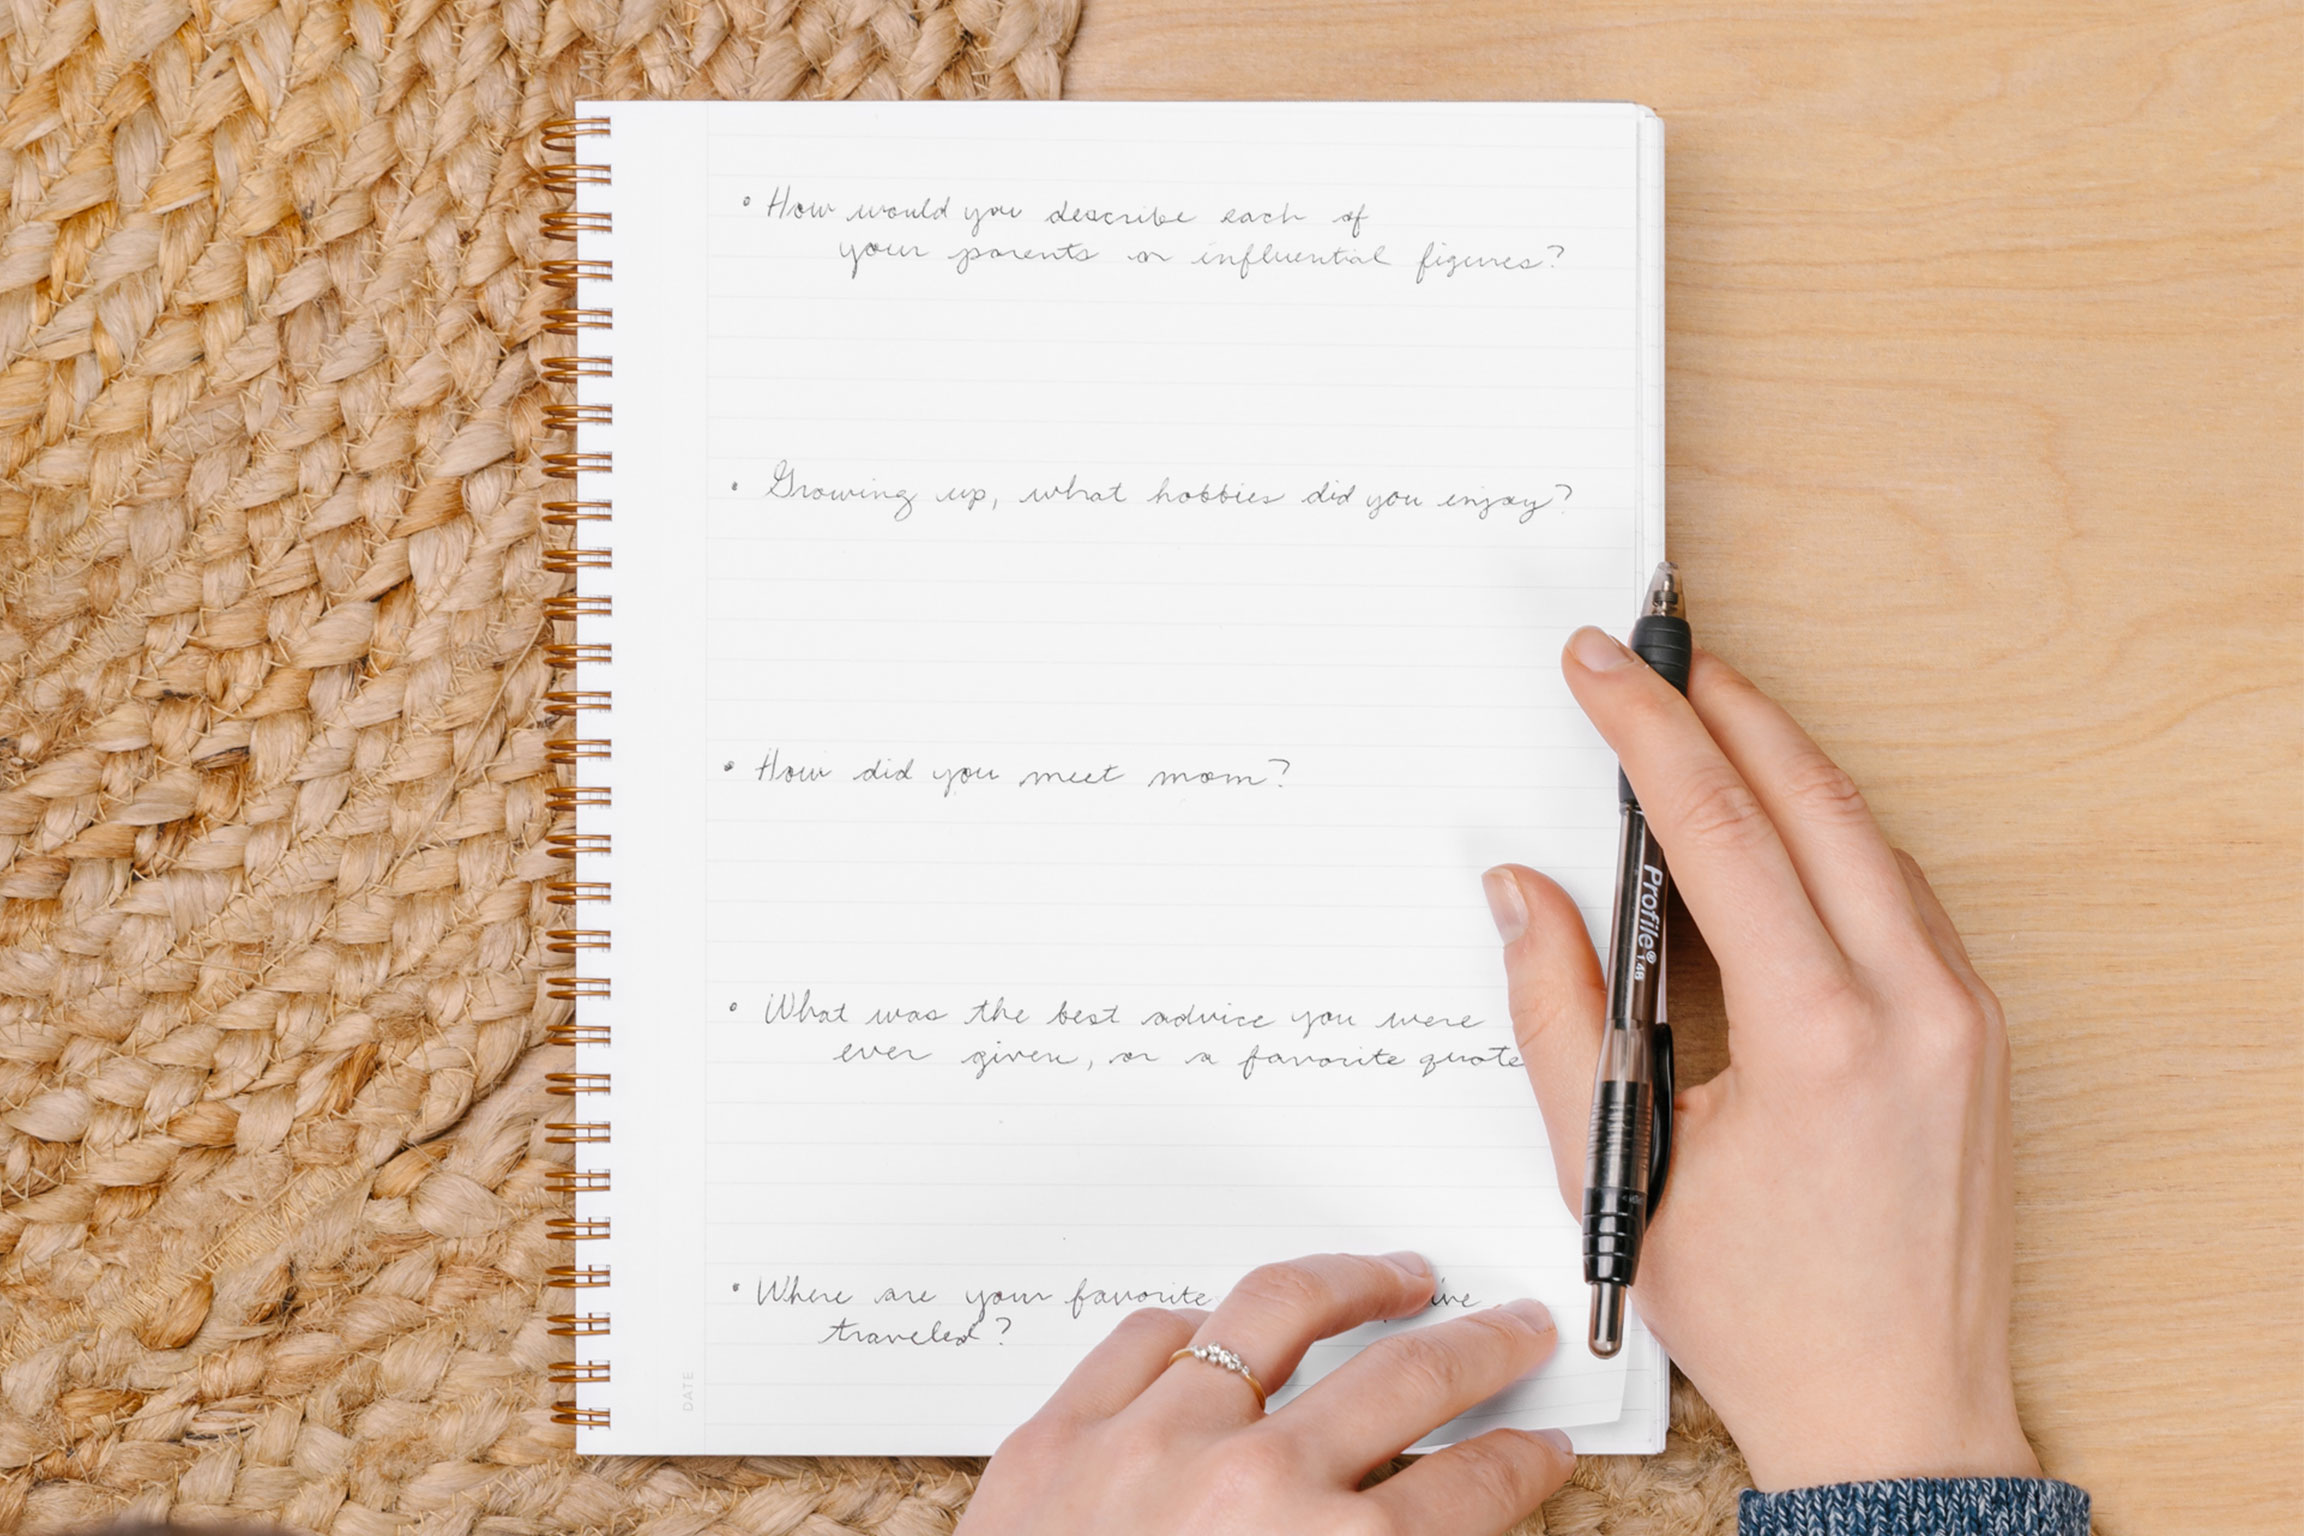 Woman writing family history questions